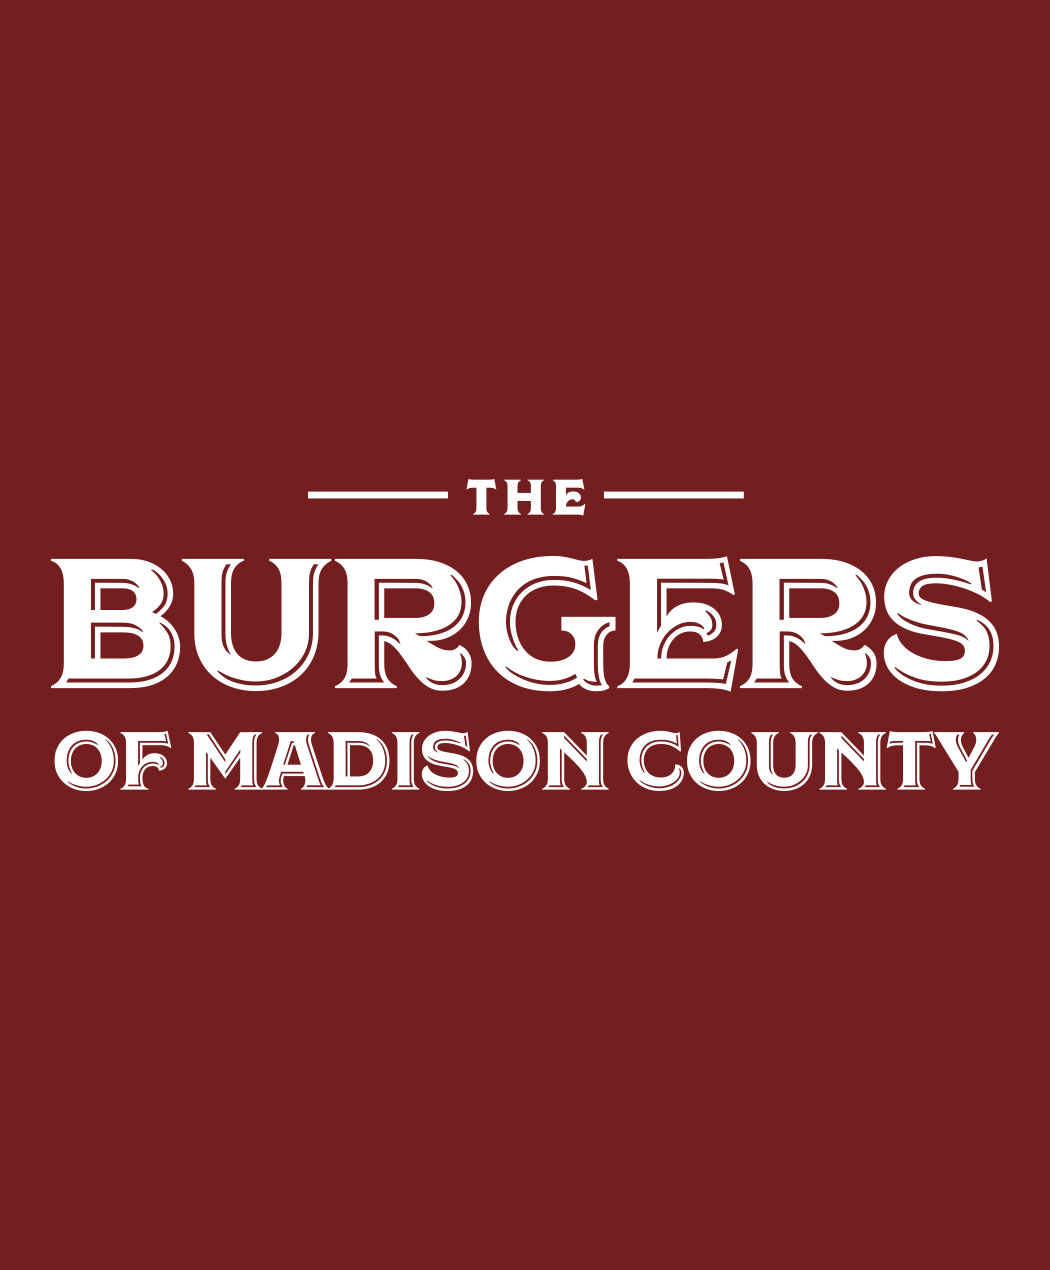 Burgers of Madison County